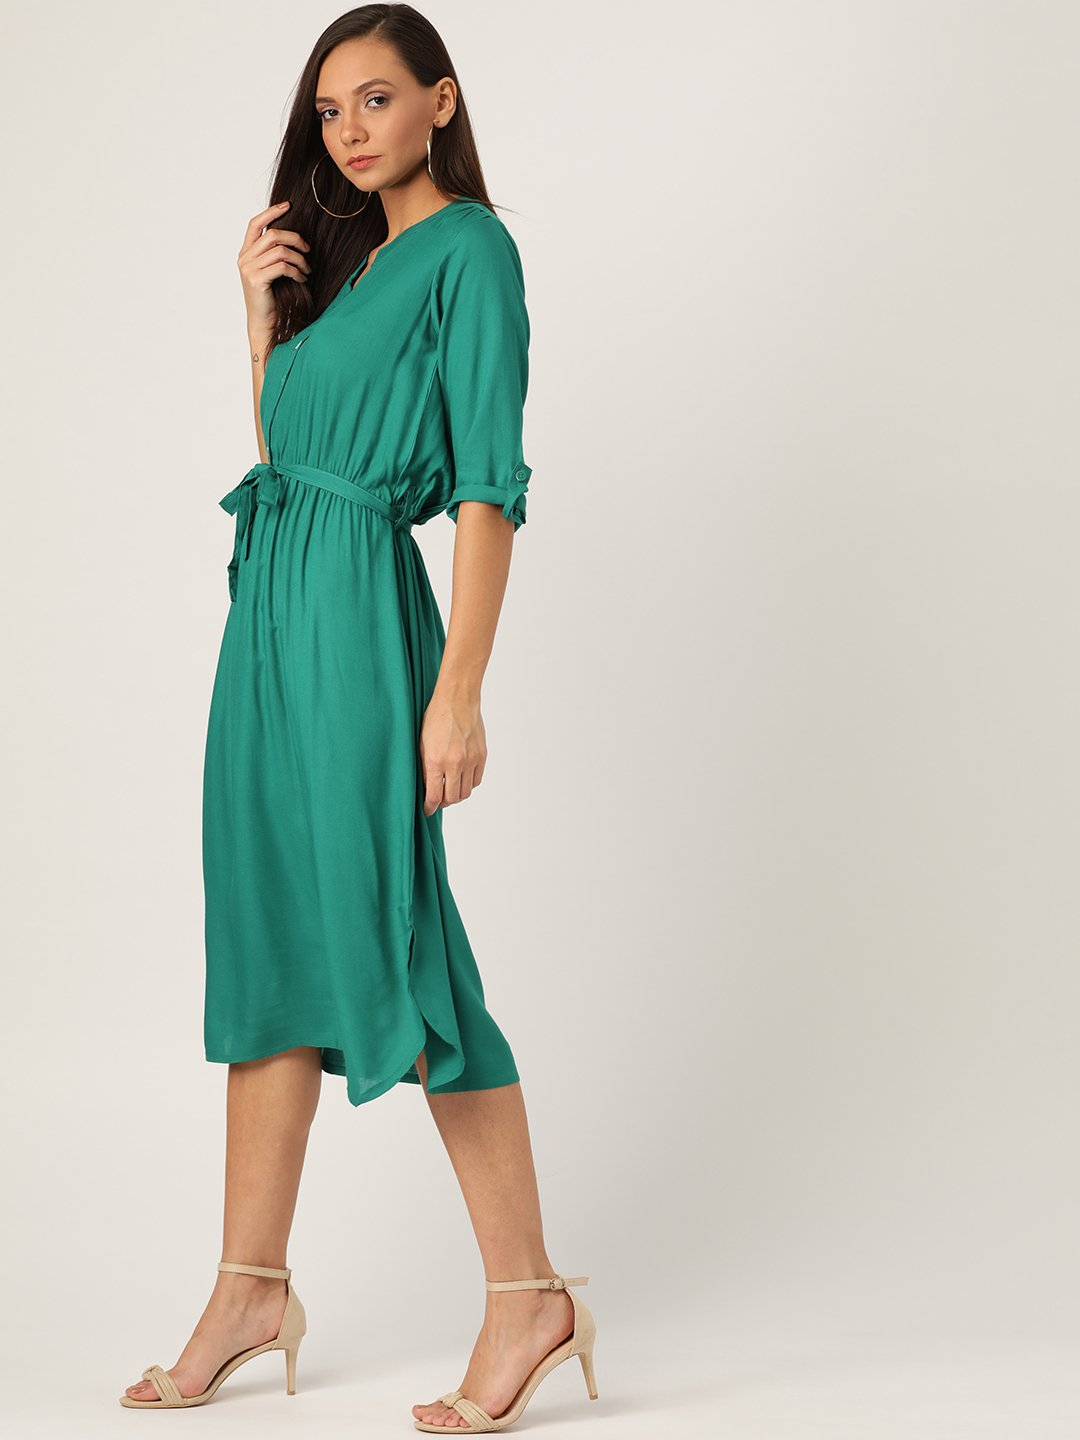 Green Dress With Belt